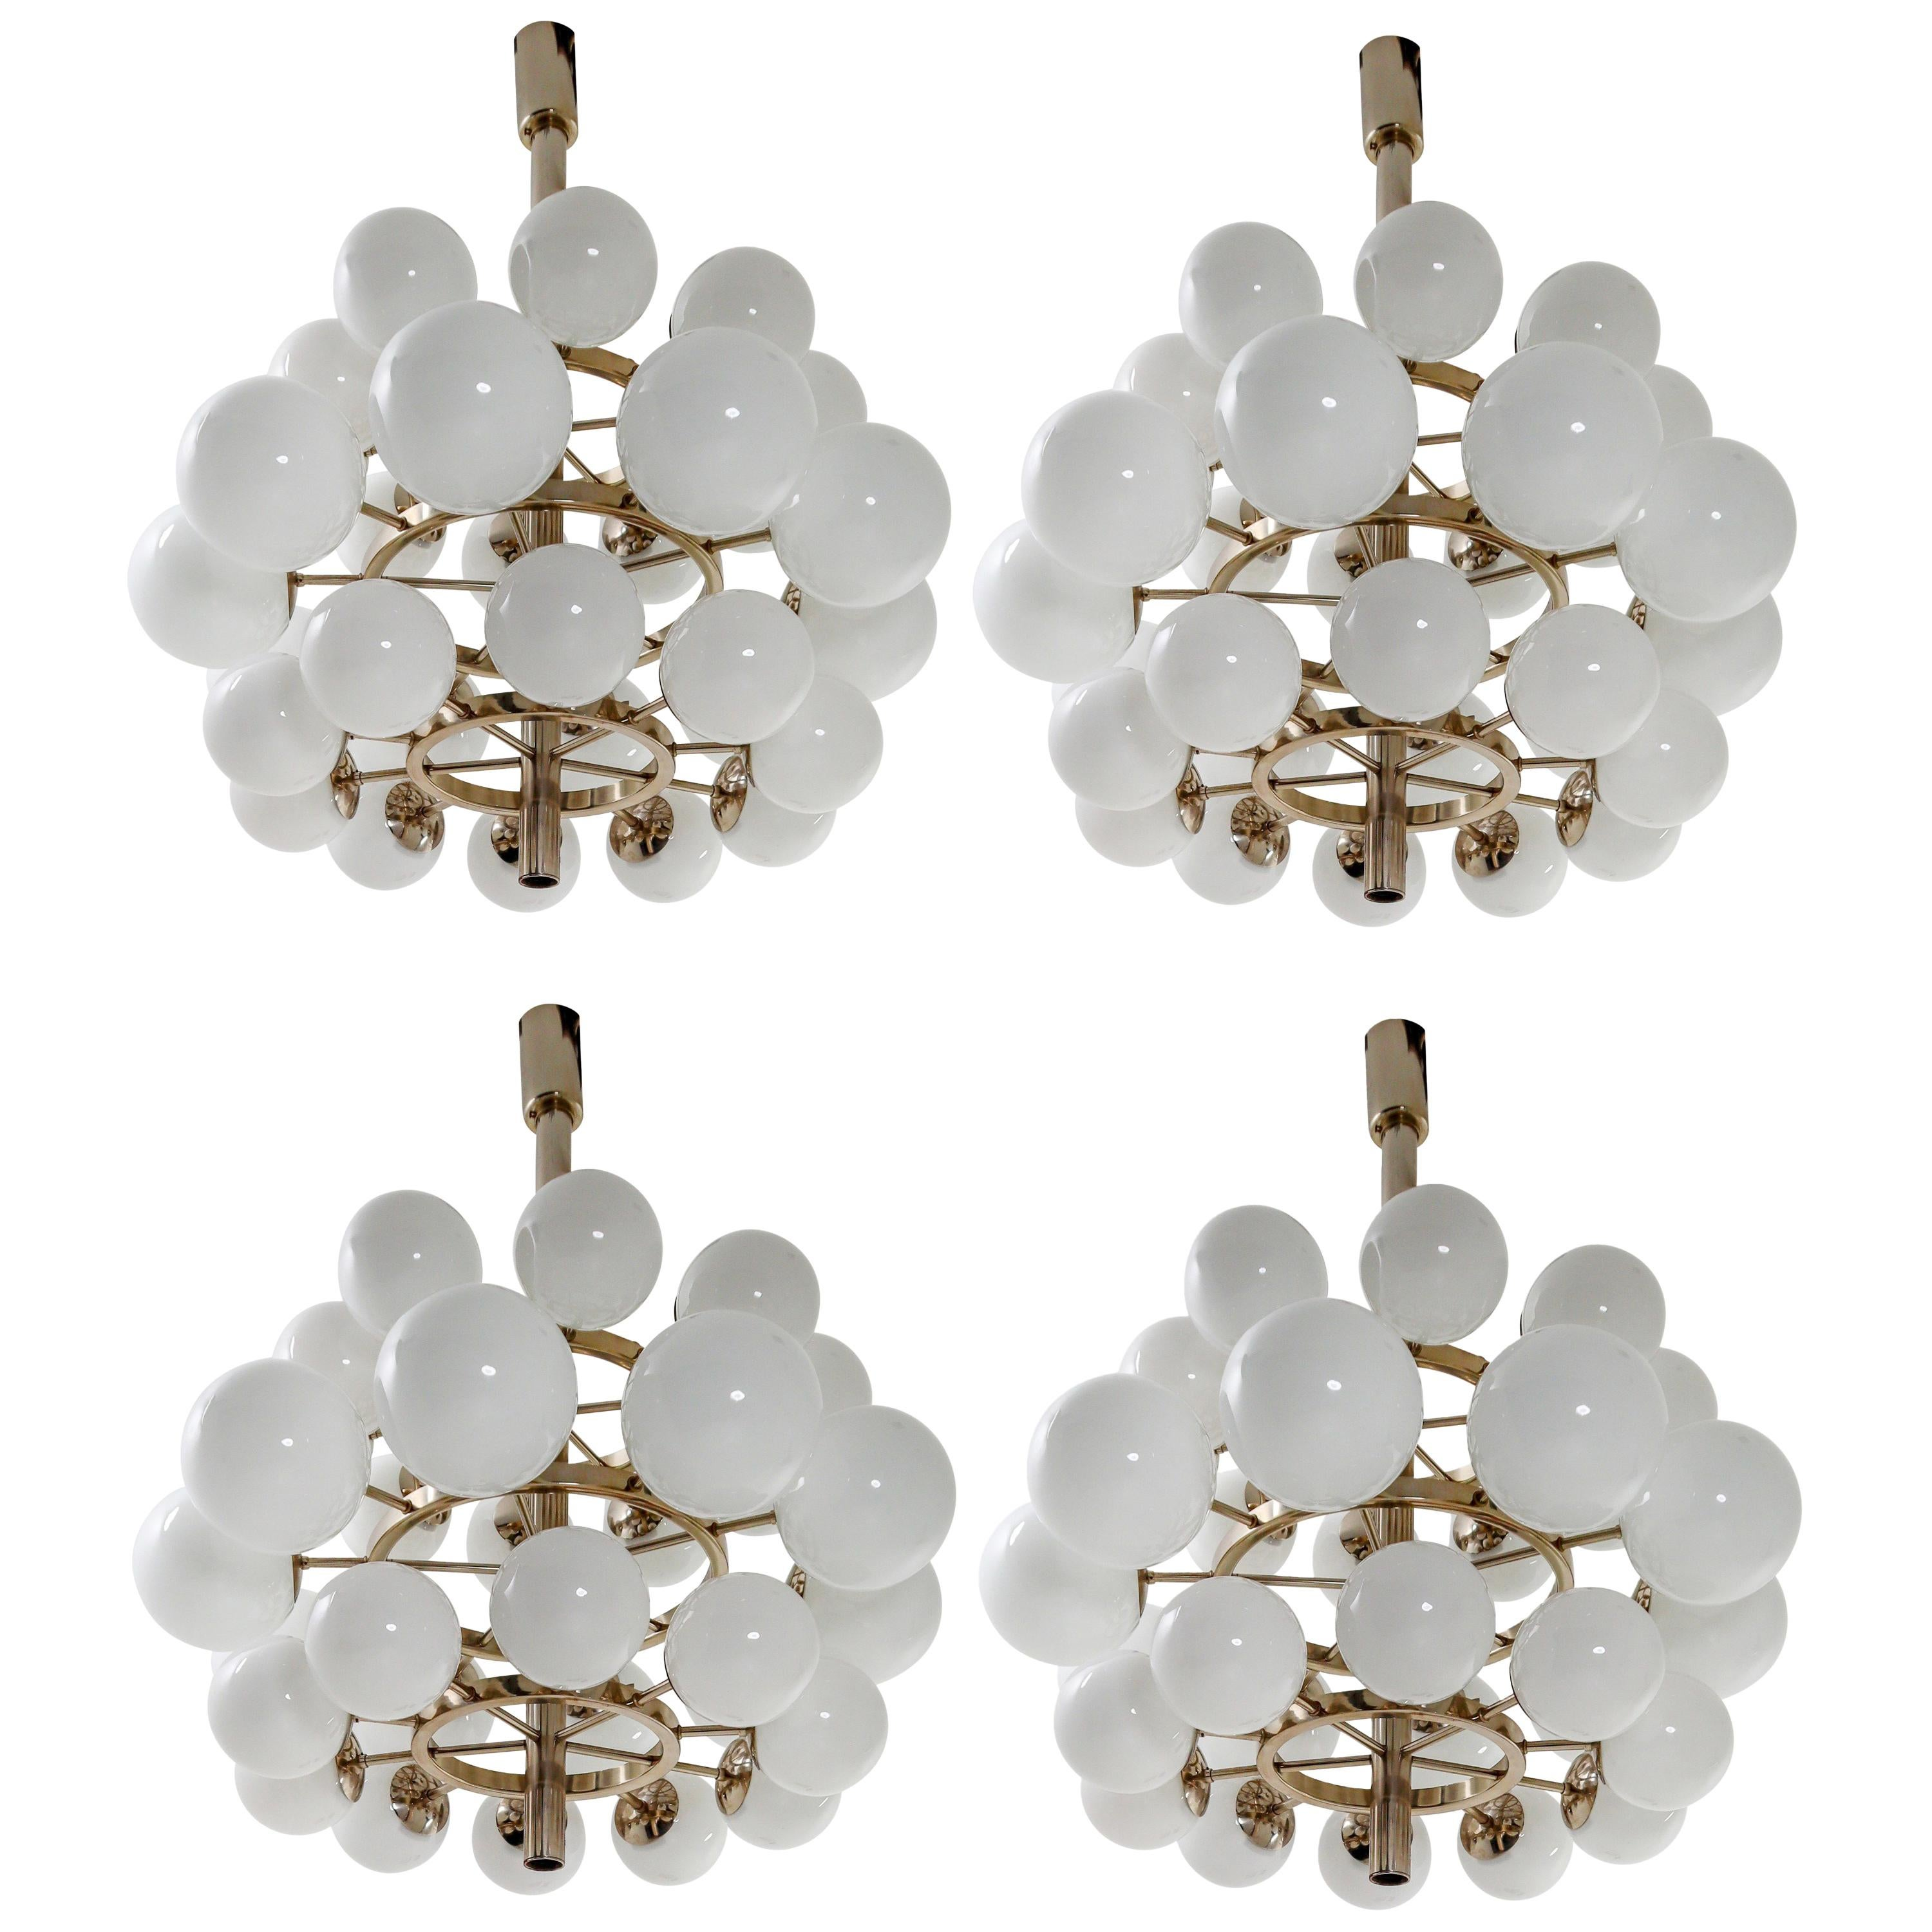 Four Extreme Large Chandeliers with 30 Handblown Opaline Glass Globes